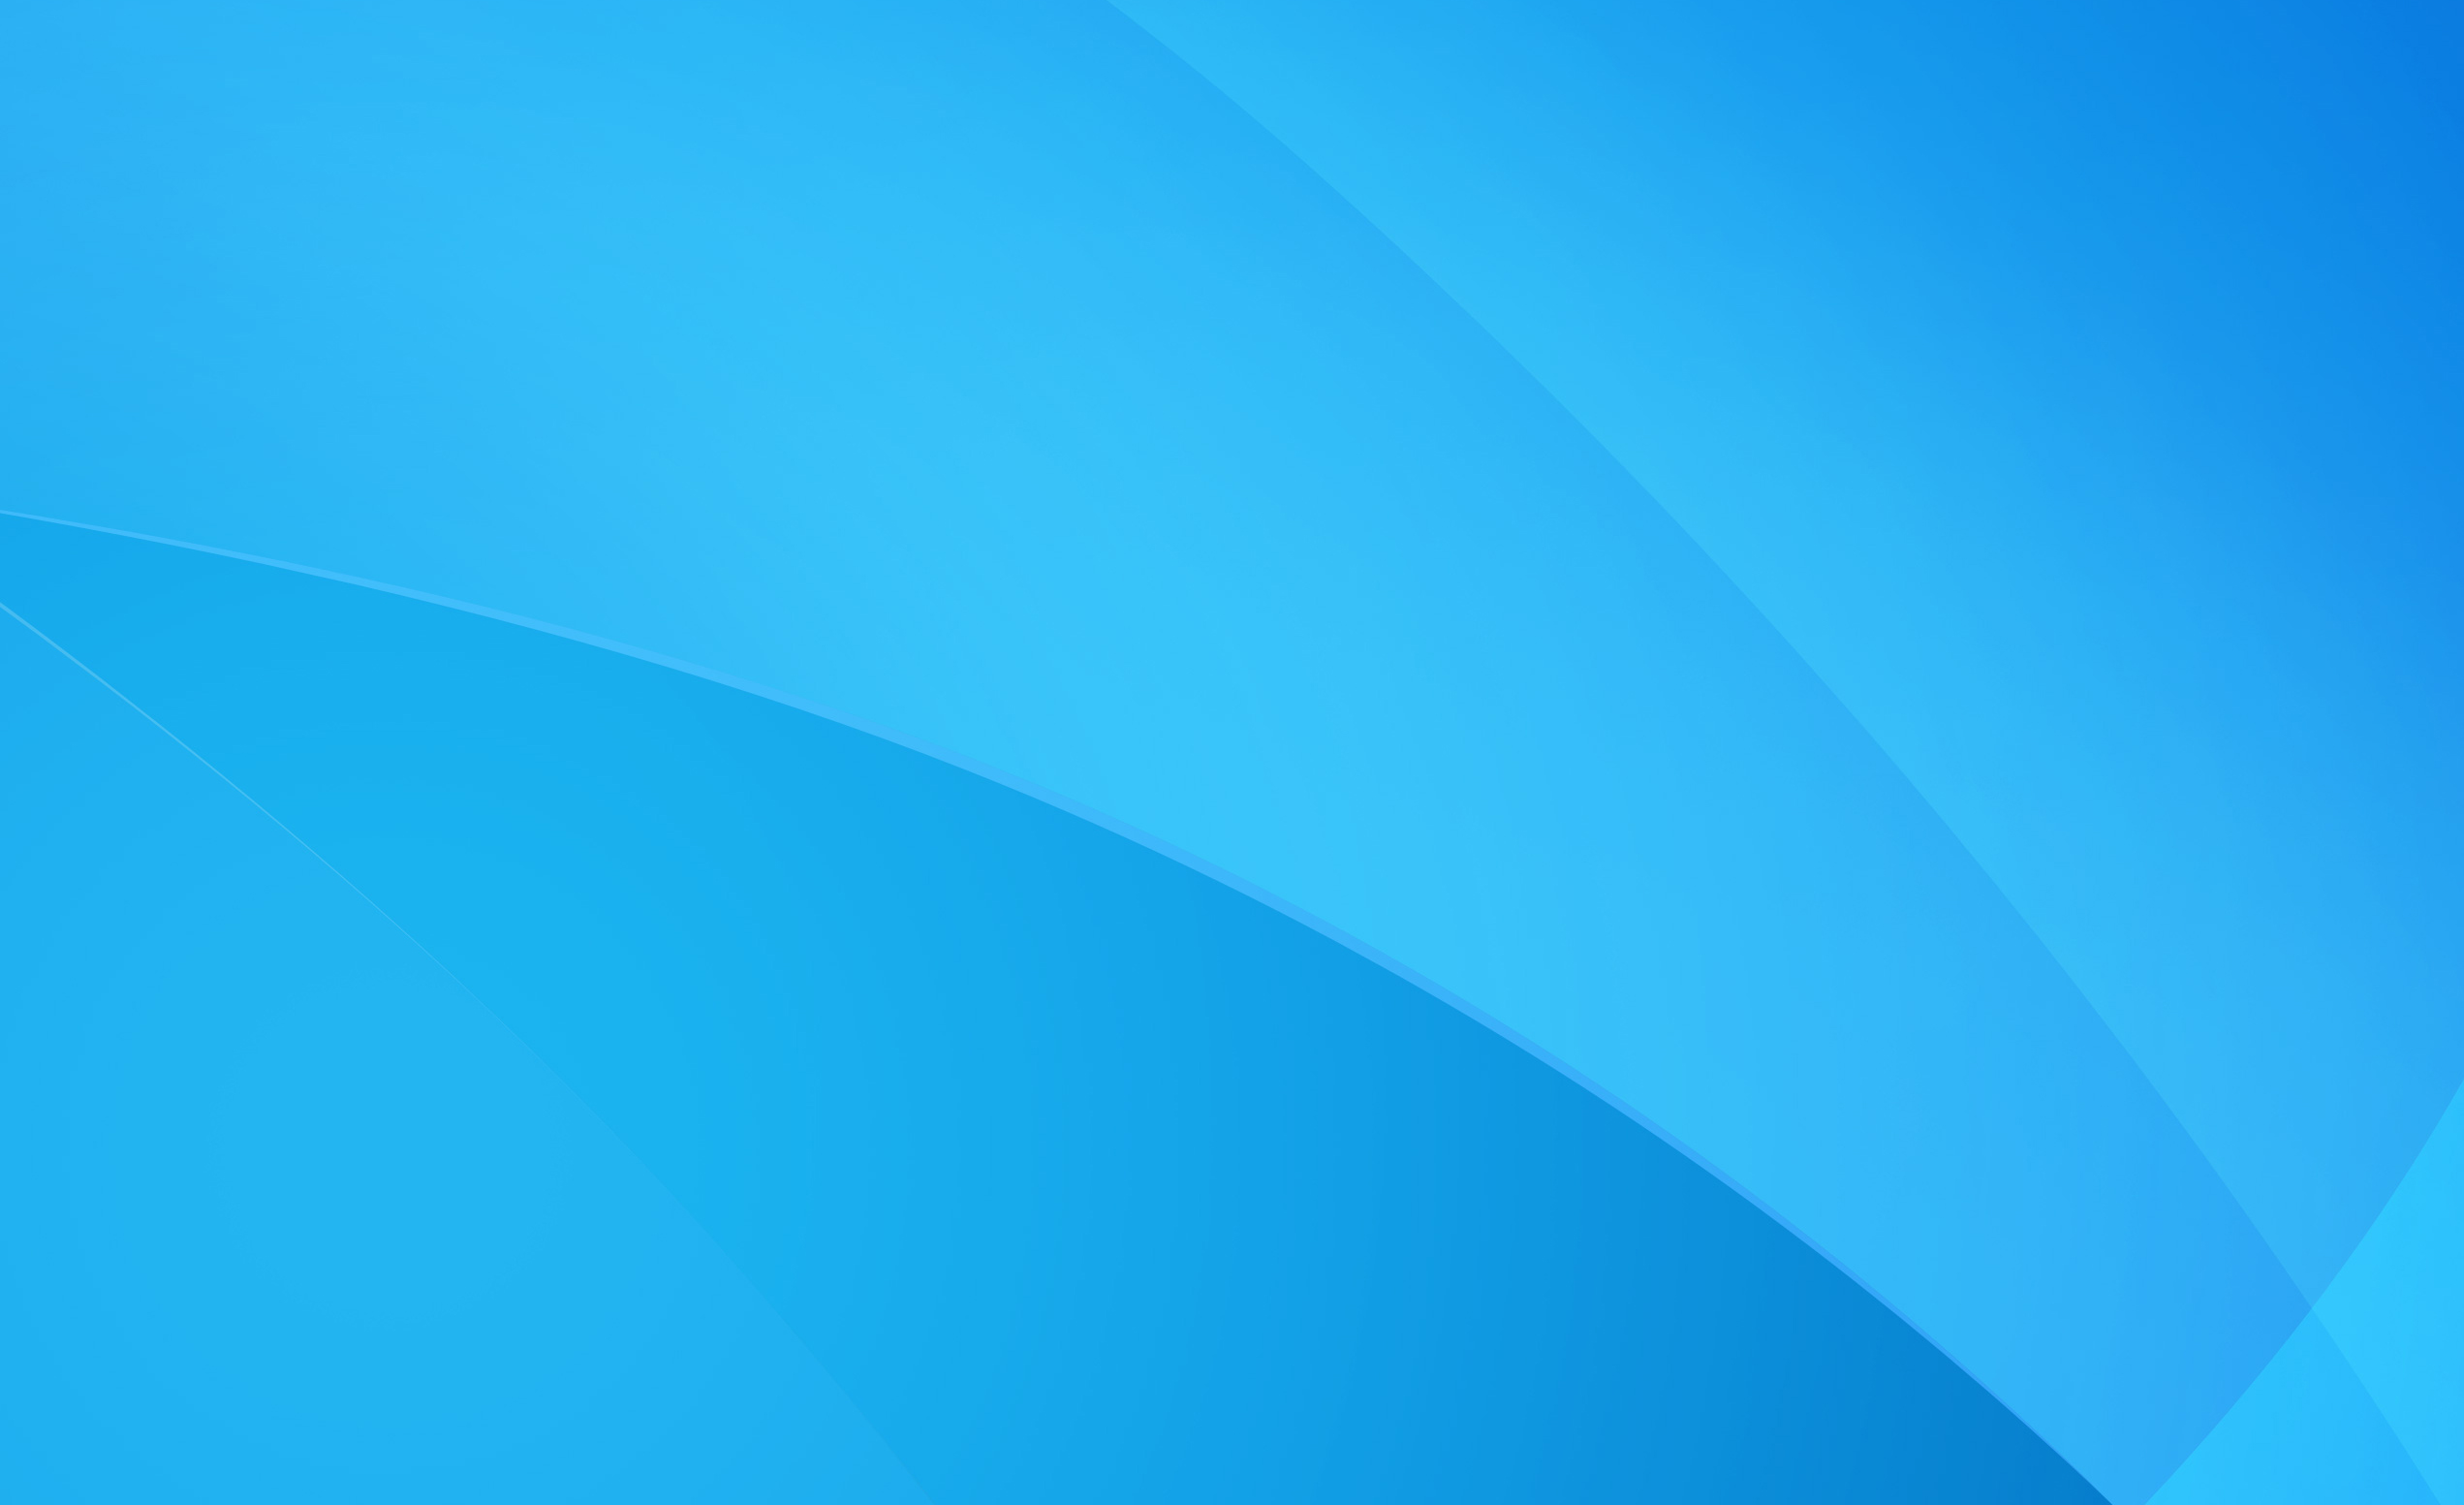 Blue-abstract-background.jpg